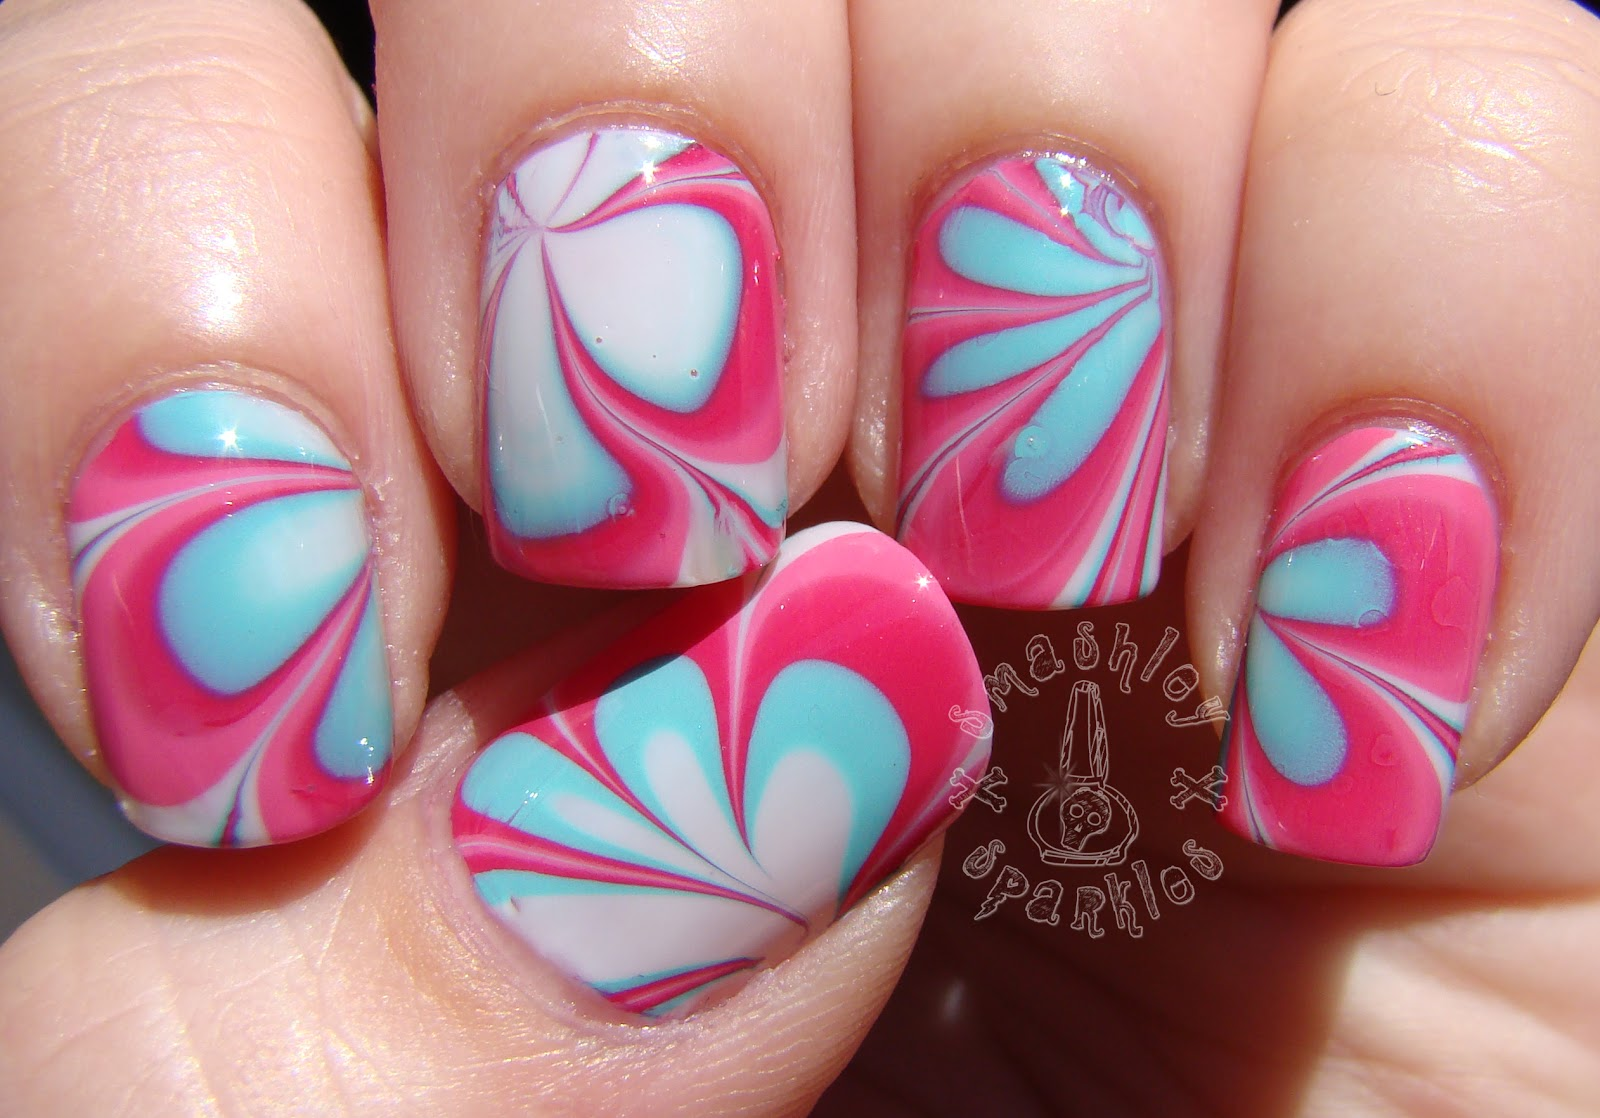 Without Water Marble Nail Polish Designs Topsimages